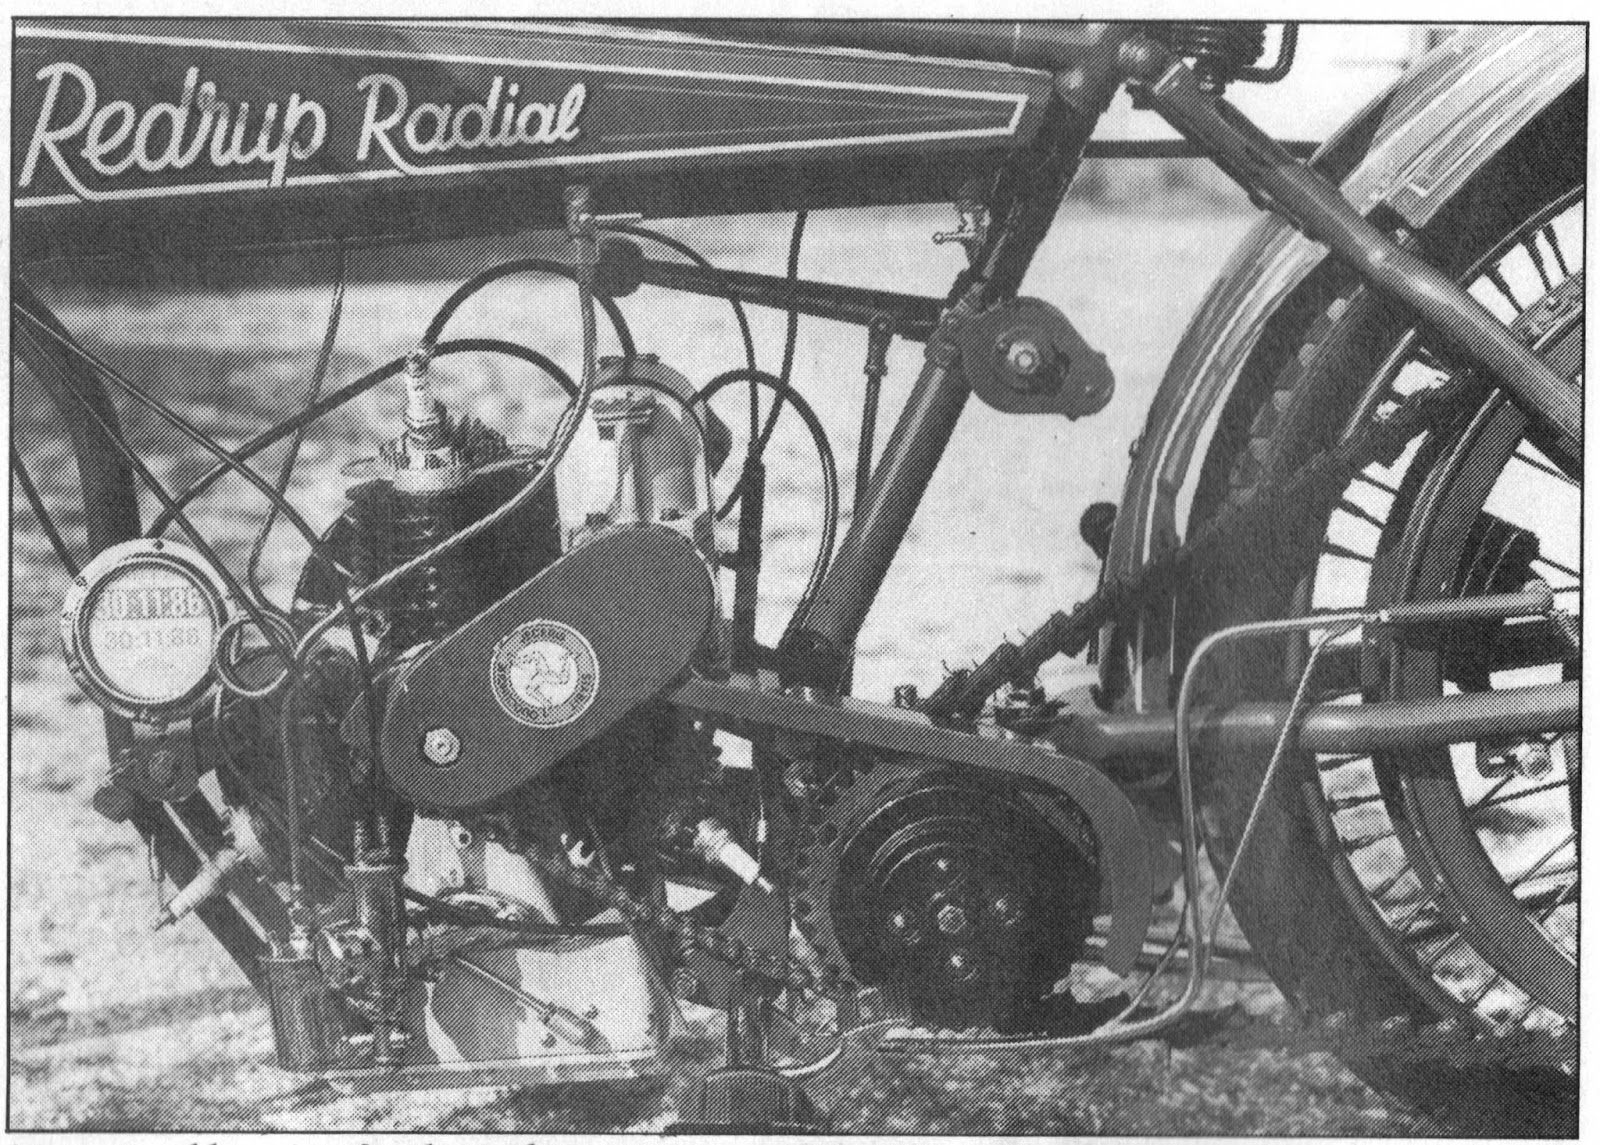 Ariel Square Four Engine Cutaway T Motorcycle Brochure Showing The New 1000cc Sq4 1939 Diagram Of Thirty These Engines Were Used By British Radial Co Who Installed Them In Frames Built Chater Lea There Cant Be Many Left